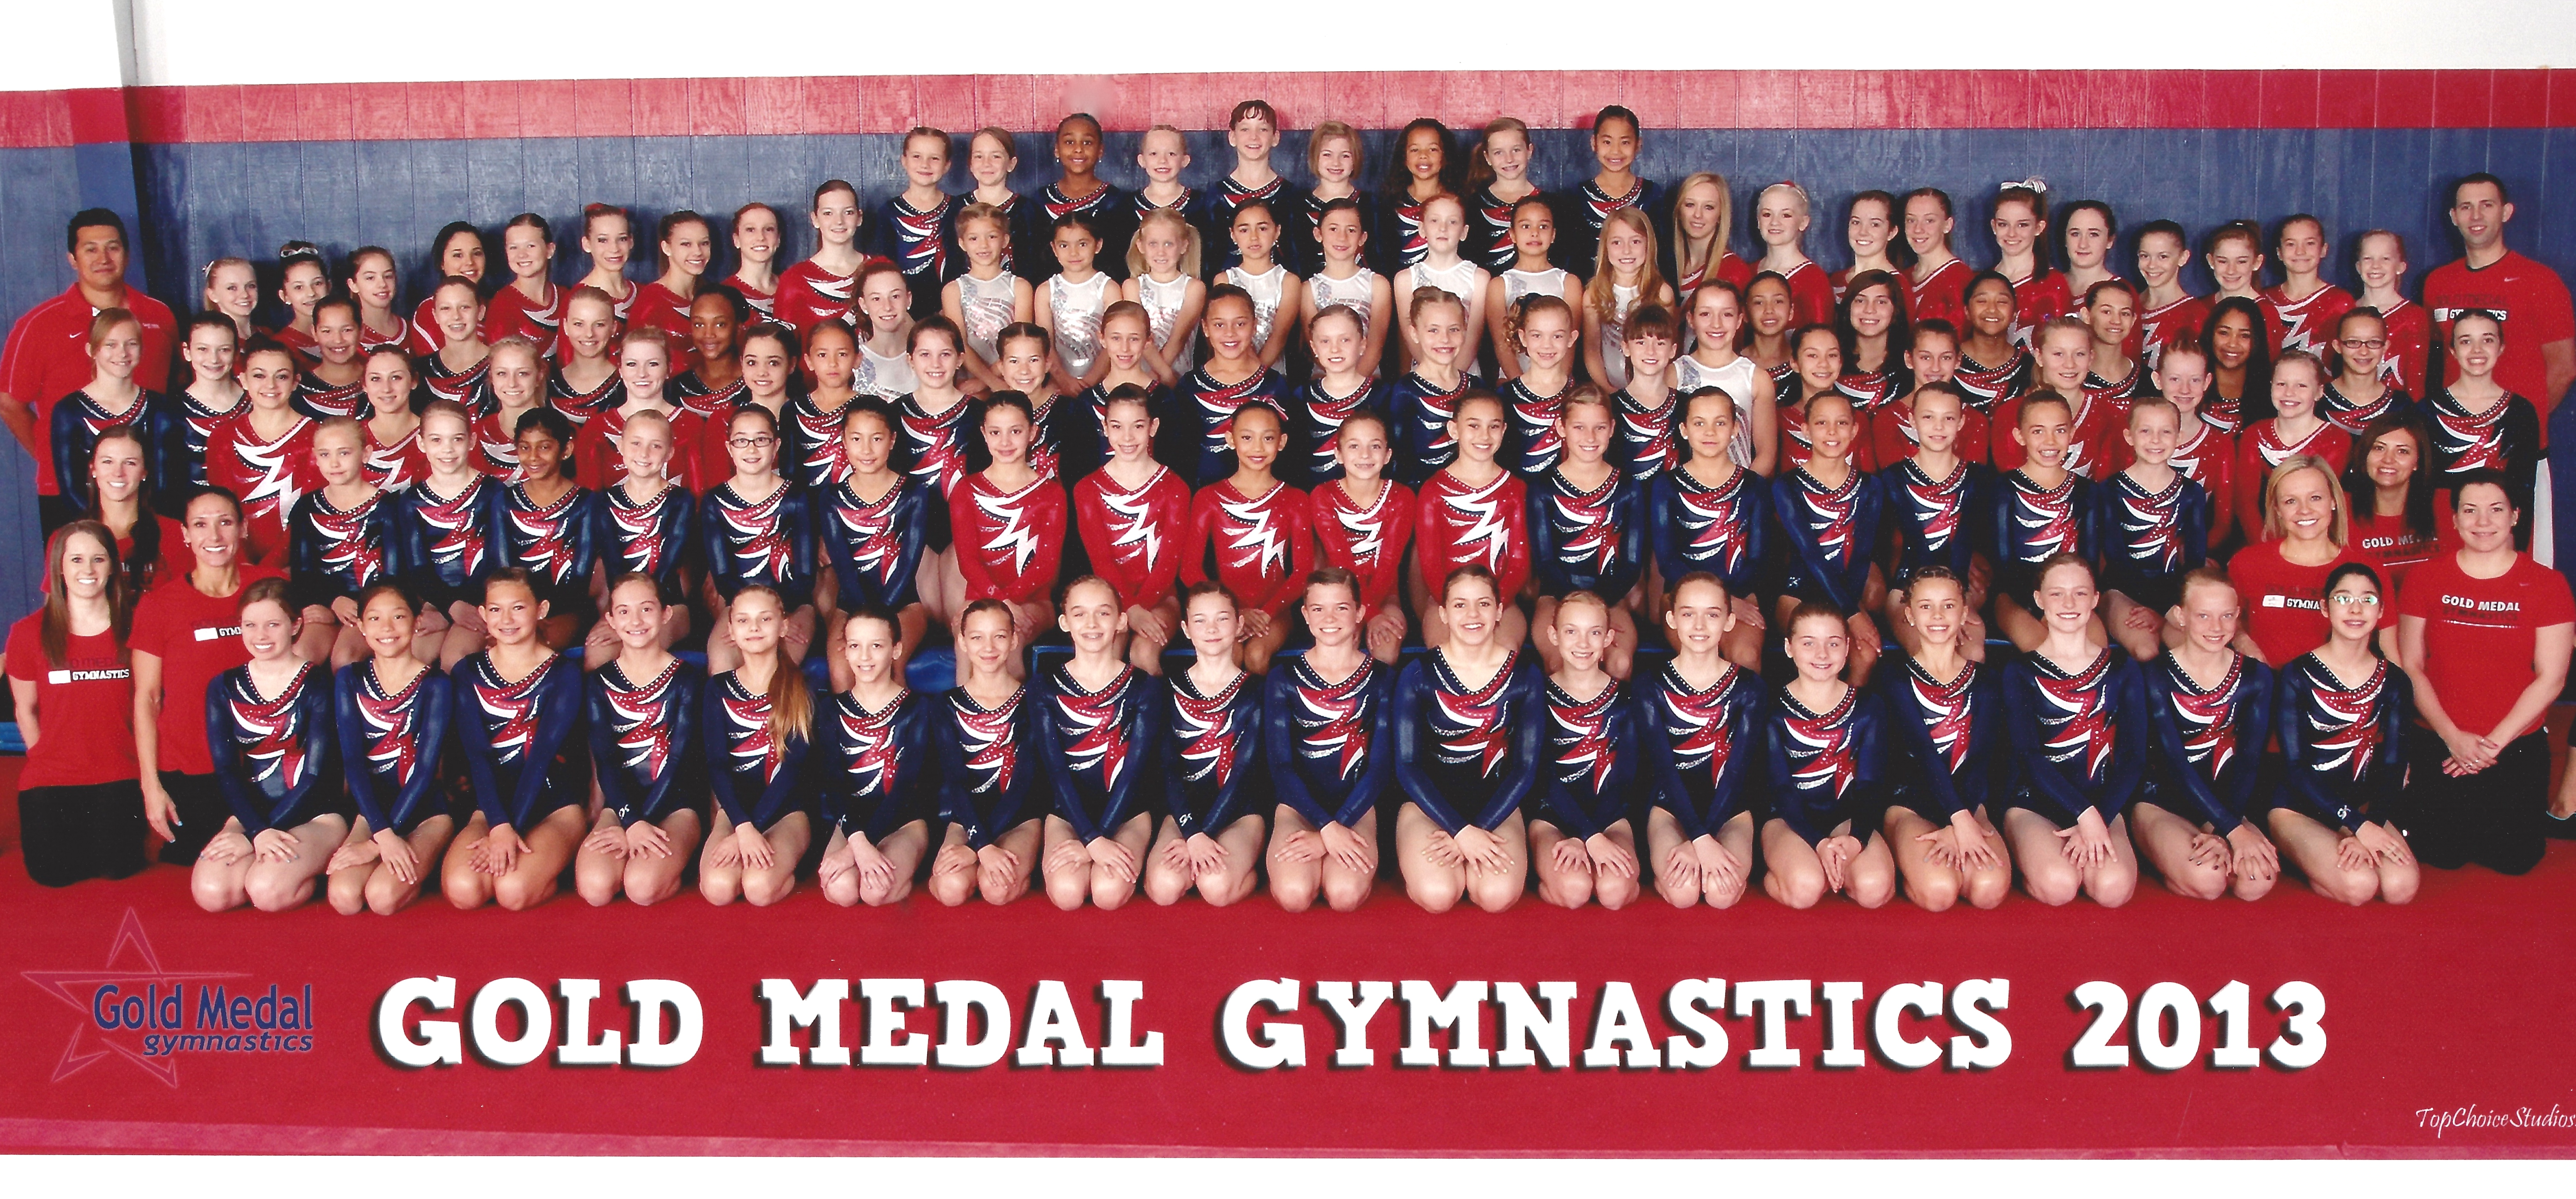 About GMGSO | Gold Medal Gymnastics Support Organization